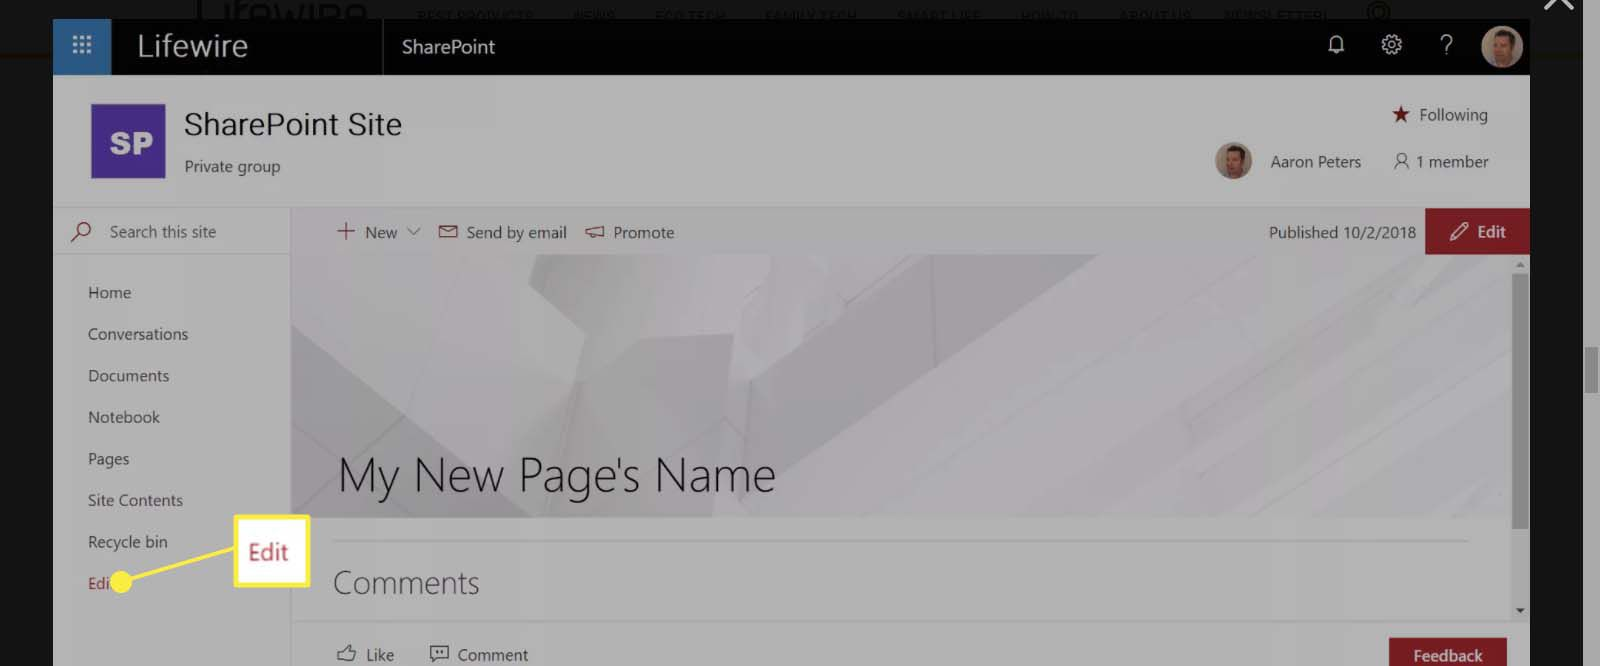 In SharePoint Site window, select